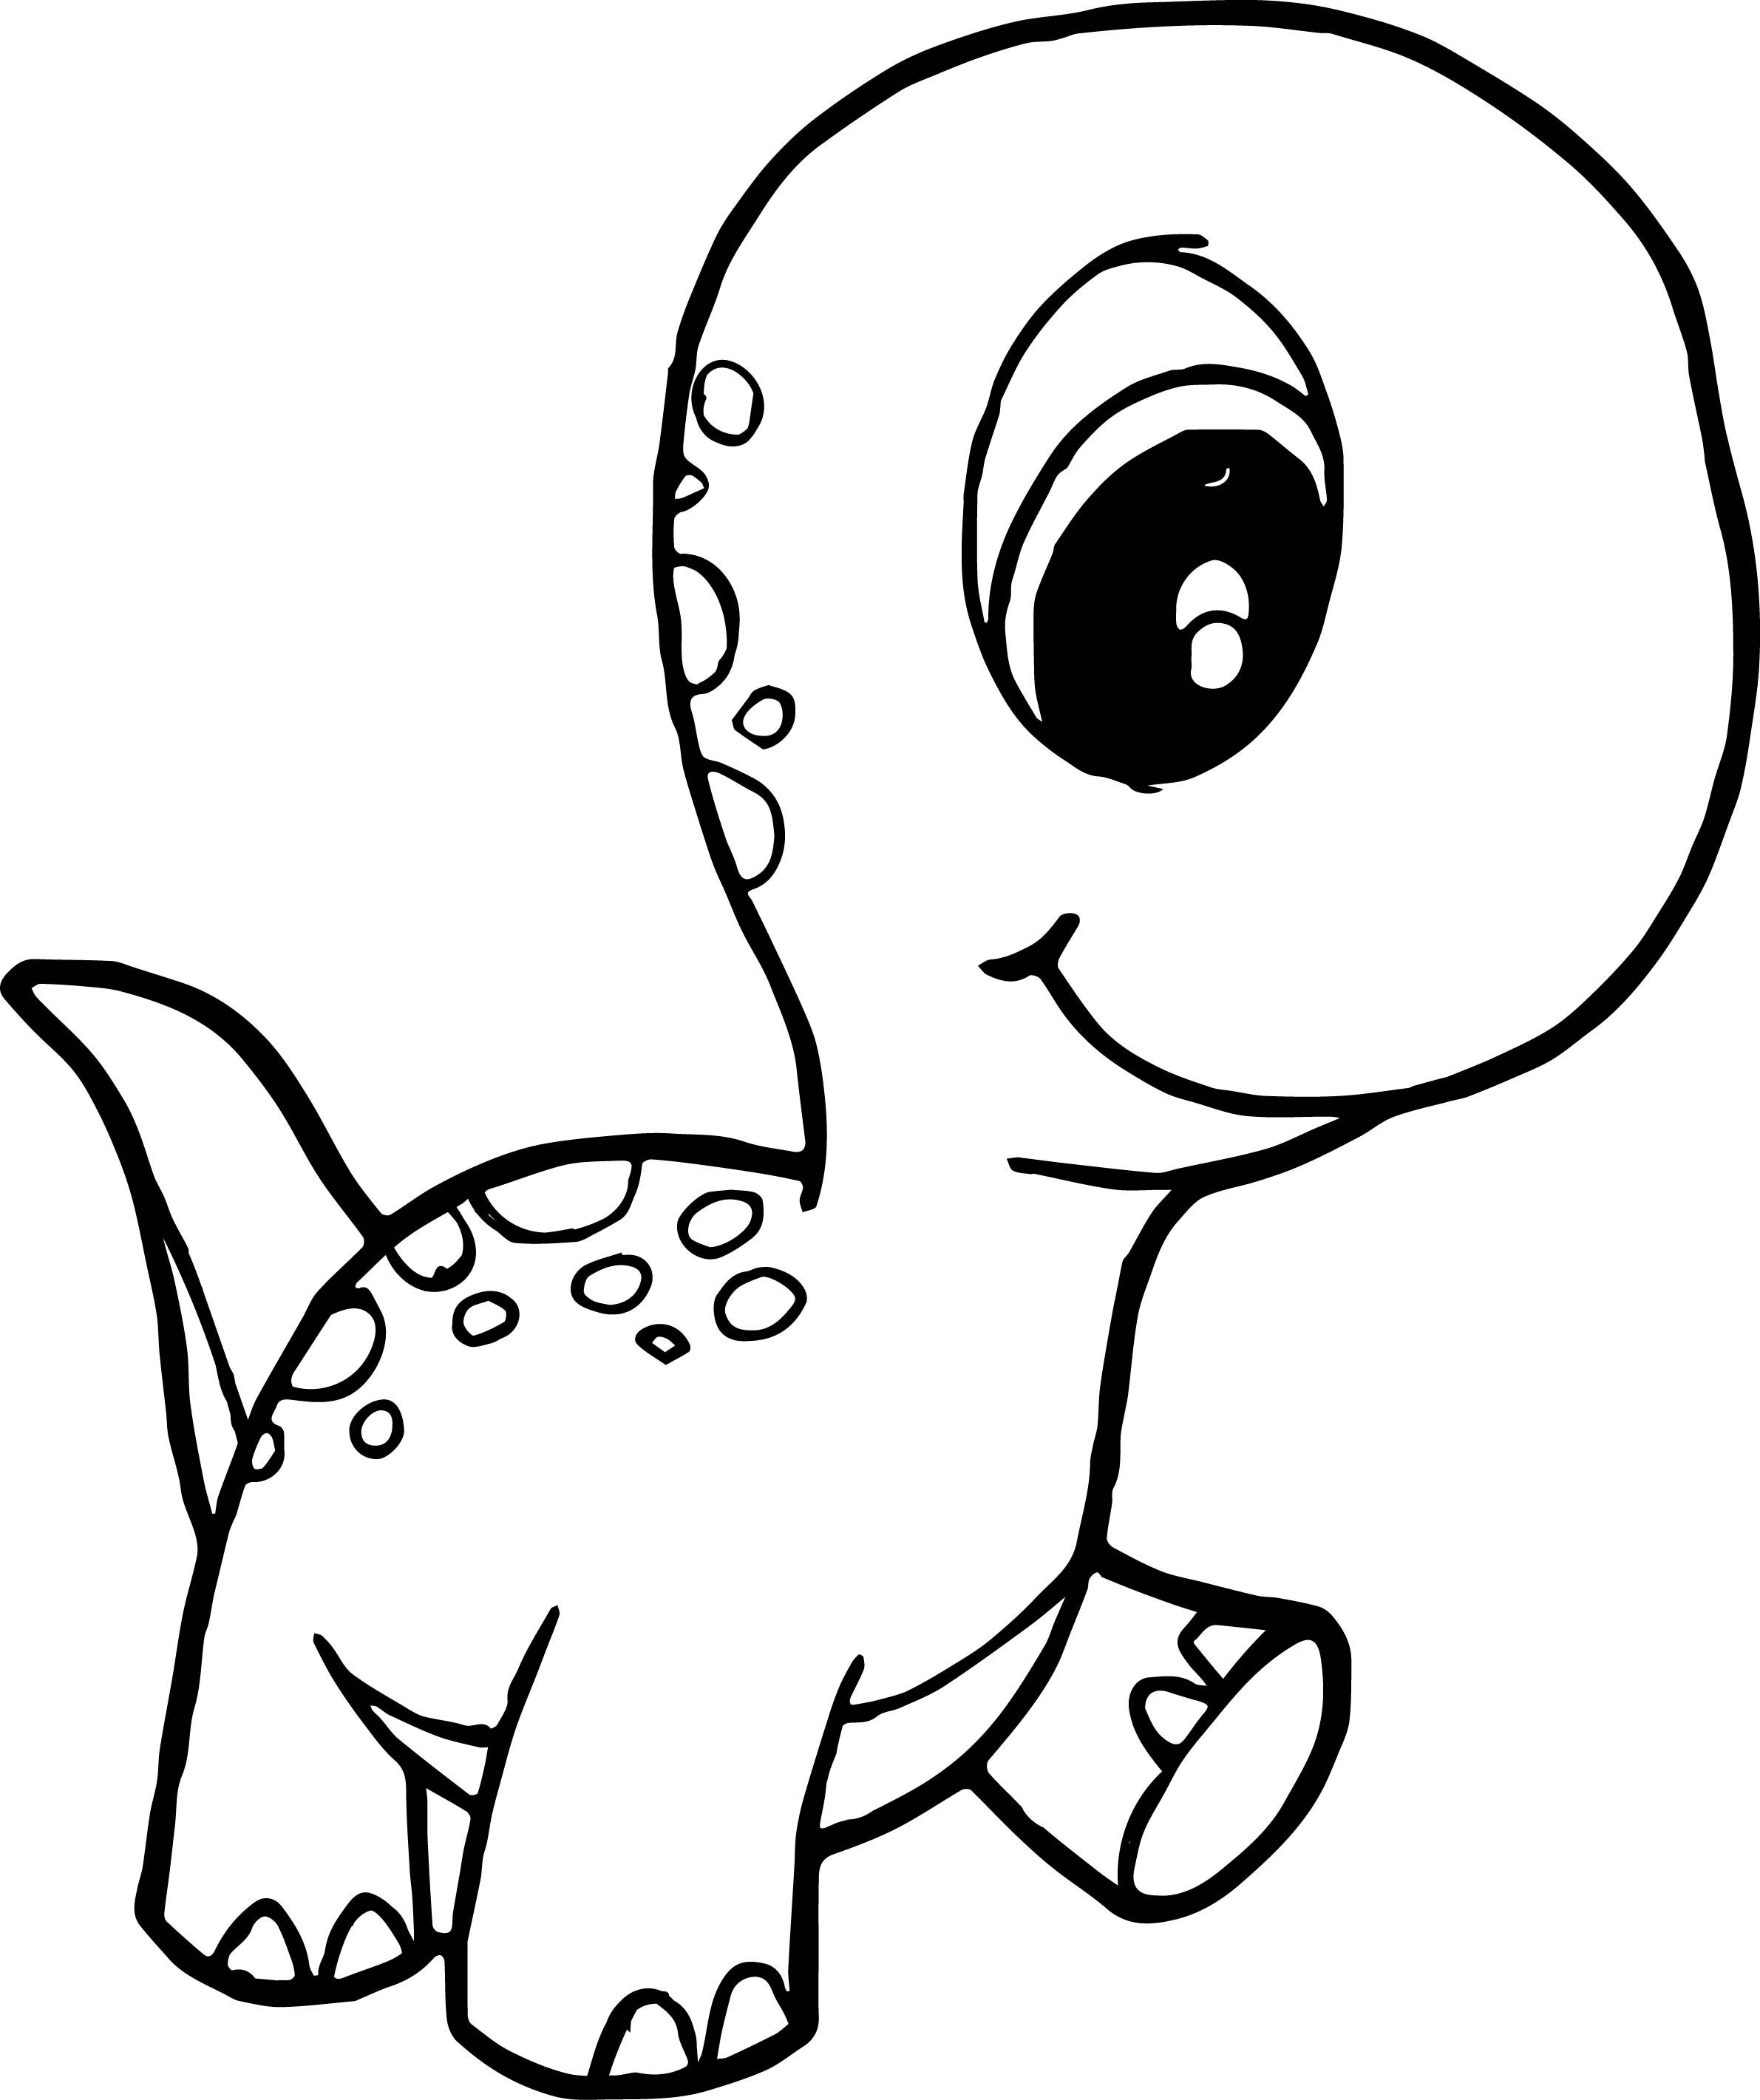 Awesome Dinosaur Cute Baby Walking Coloring Page Dinosaur